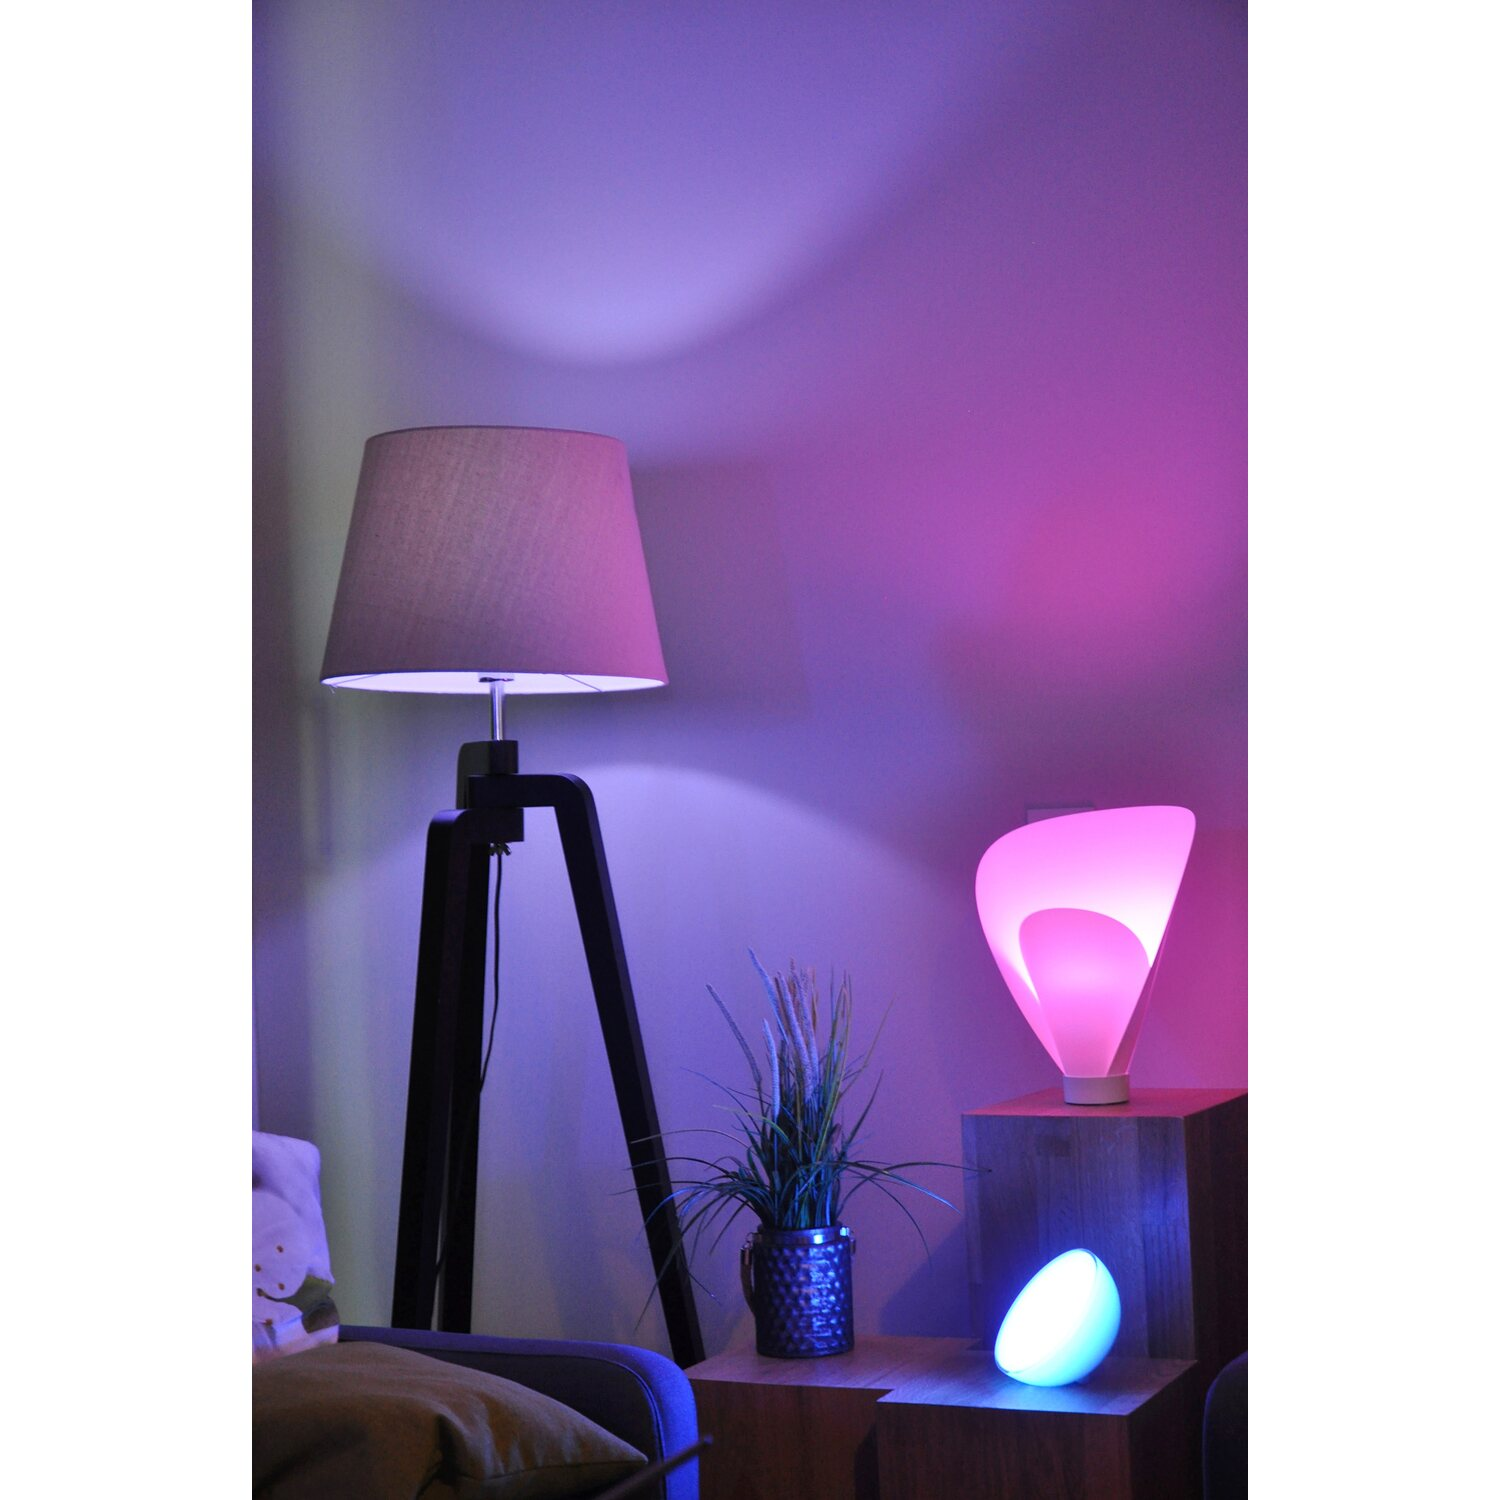 Philips Hue LED-Lampe E27/10W Weiß&Mehrfarbig Color ...